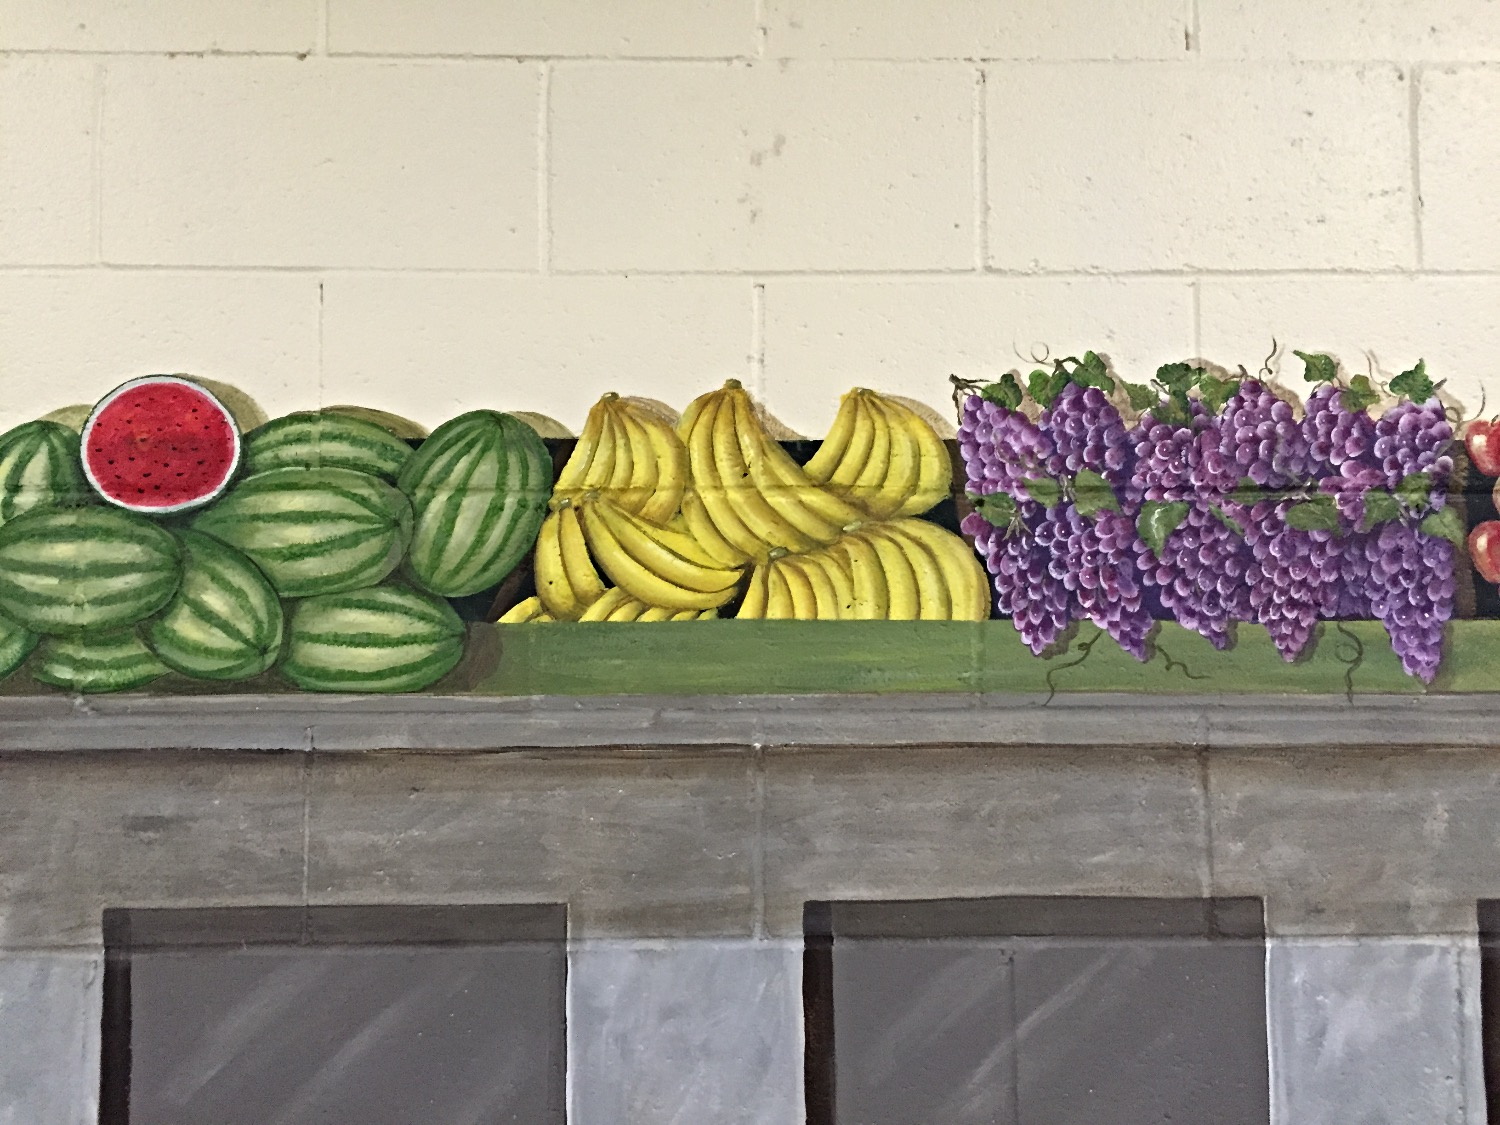 Closeup of produce